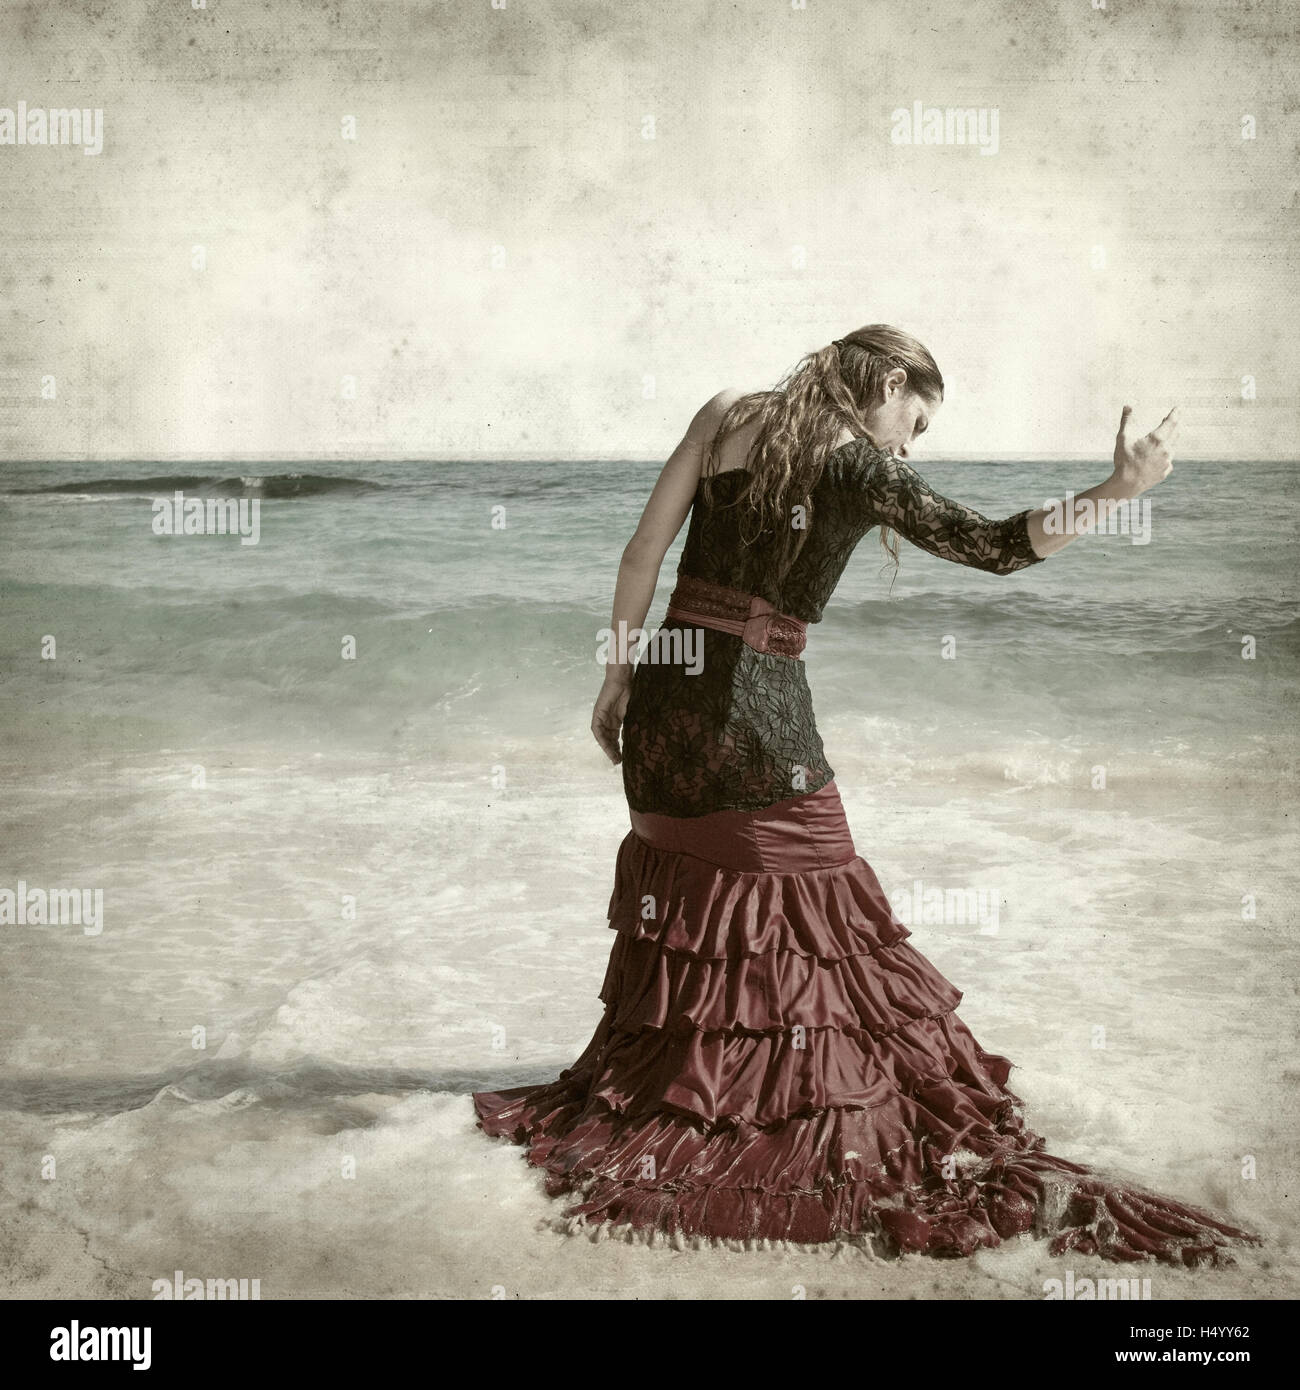 textured old paper background with flamenco dancer by the ocean shore - Stock Image